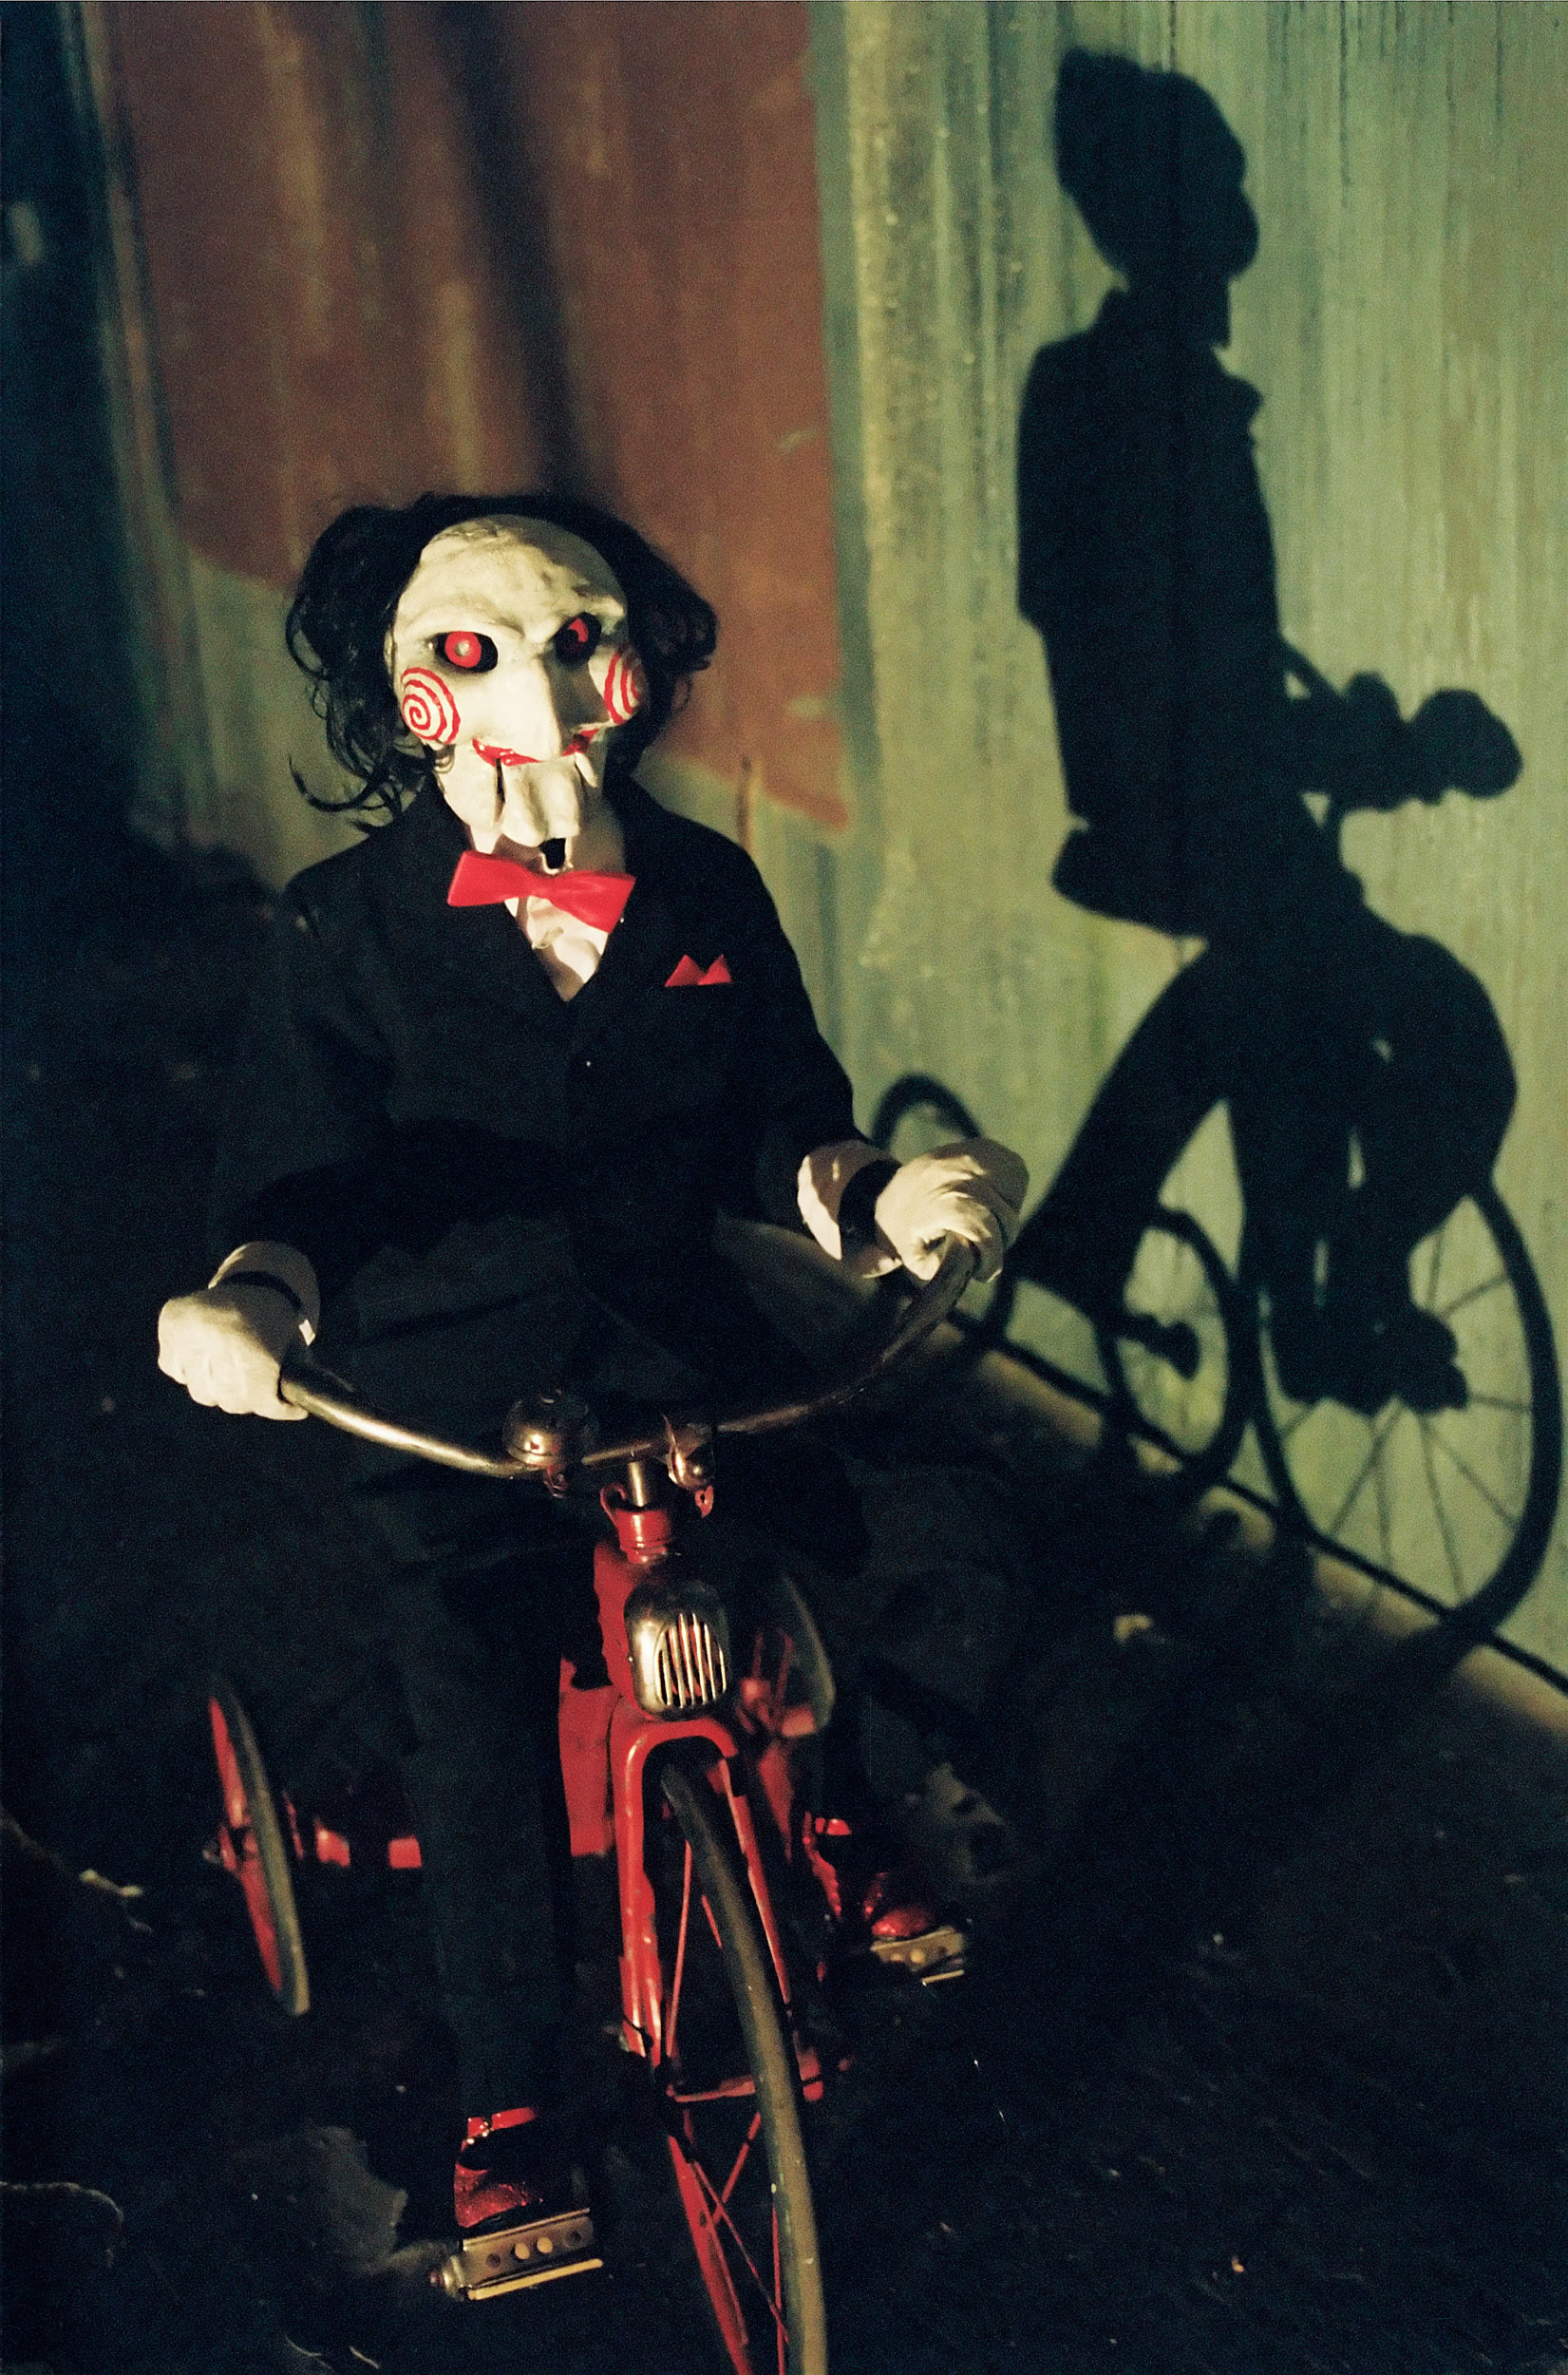 Billy the Saw Puppet